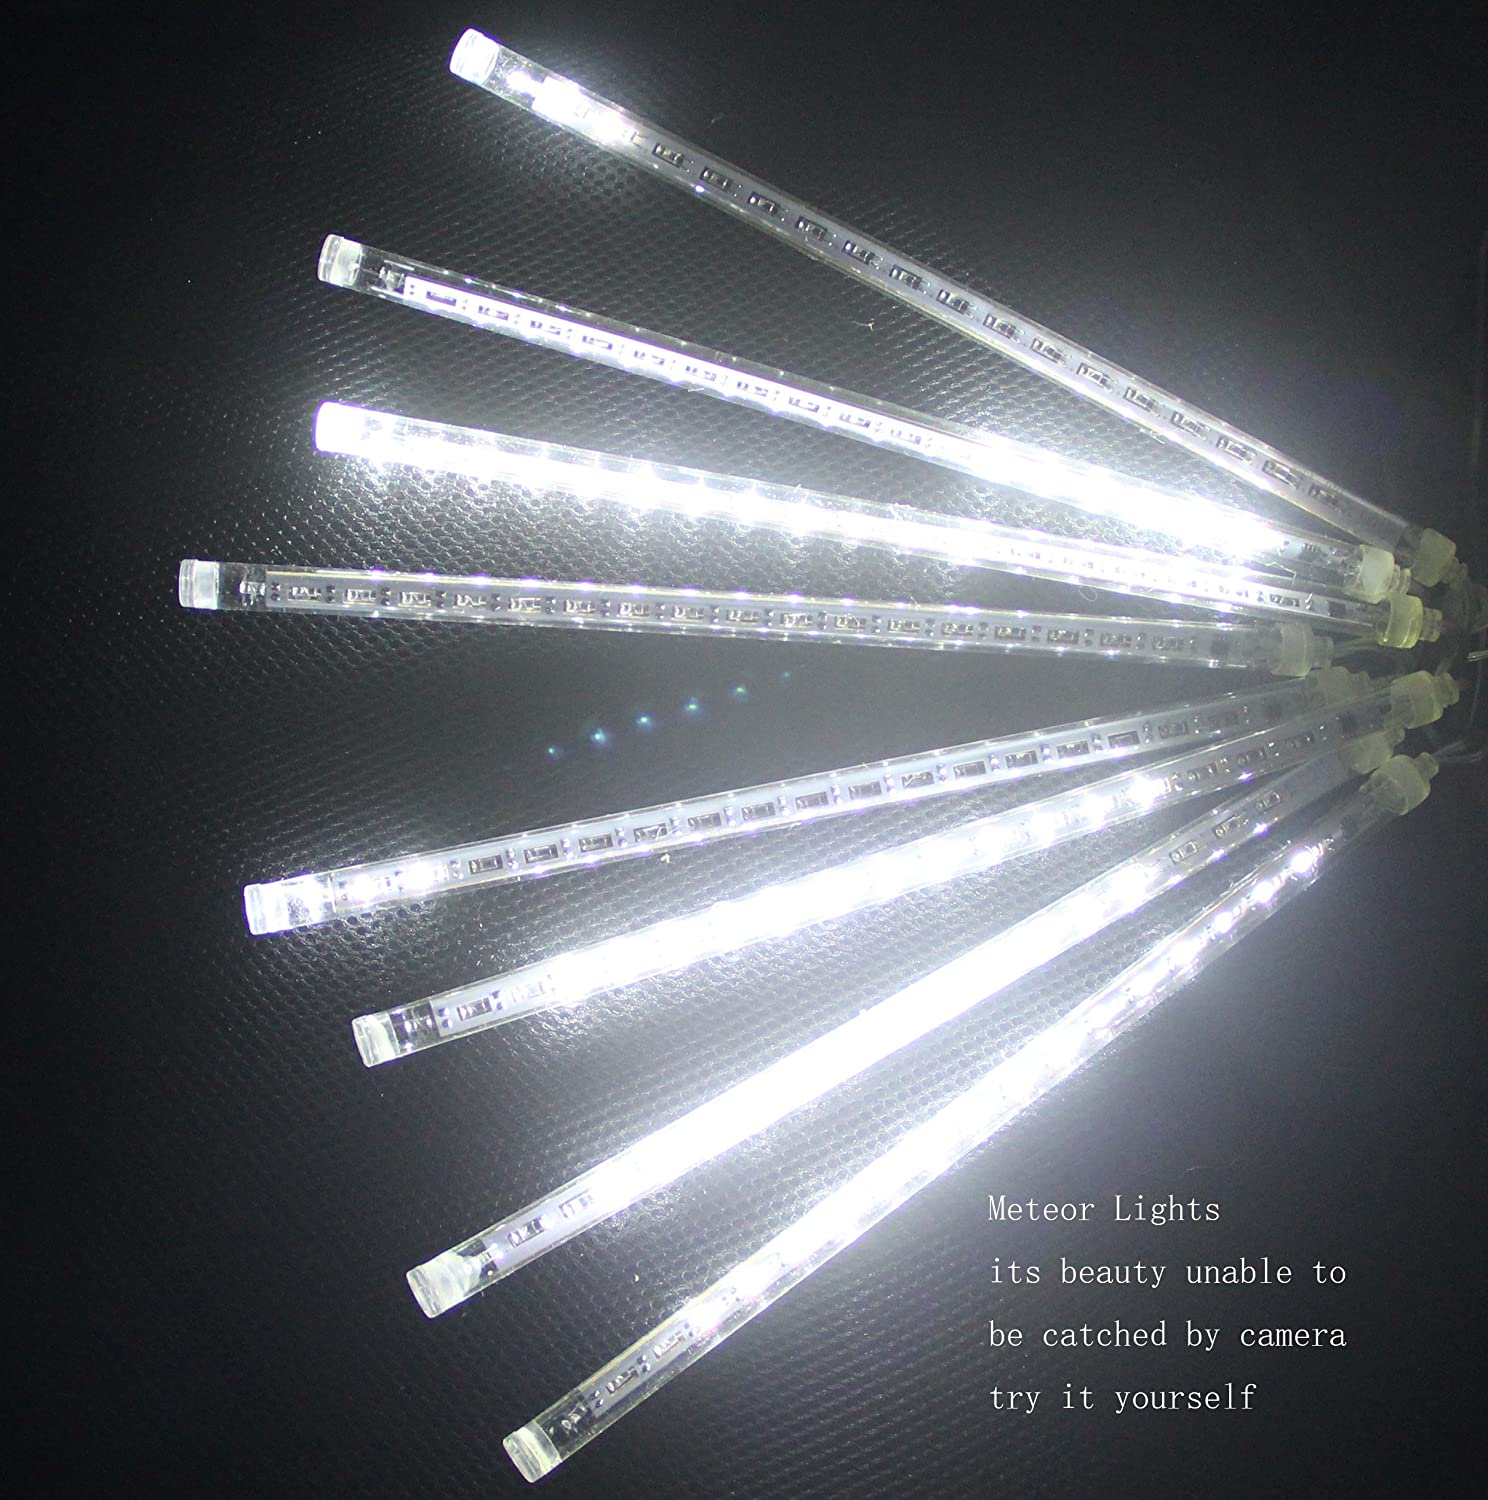 CDL Meteor snow fall Shower rain drop Waterproof Led 30cm/50cm/8tubes white/blue/color Christmas Xmas Lights ideal for indoor outdoor decorations (30cm, blue)